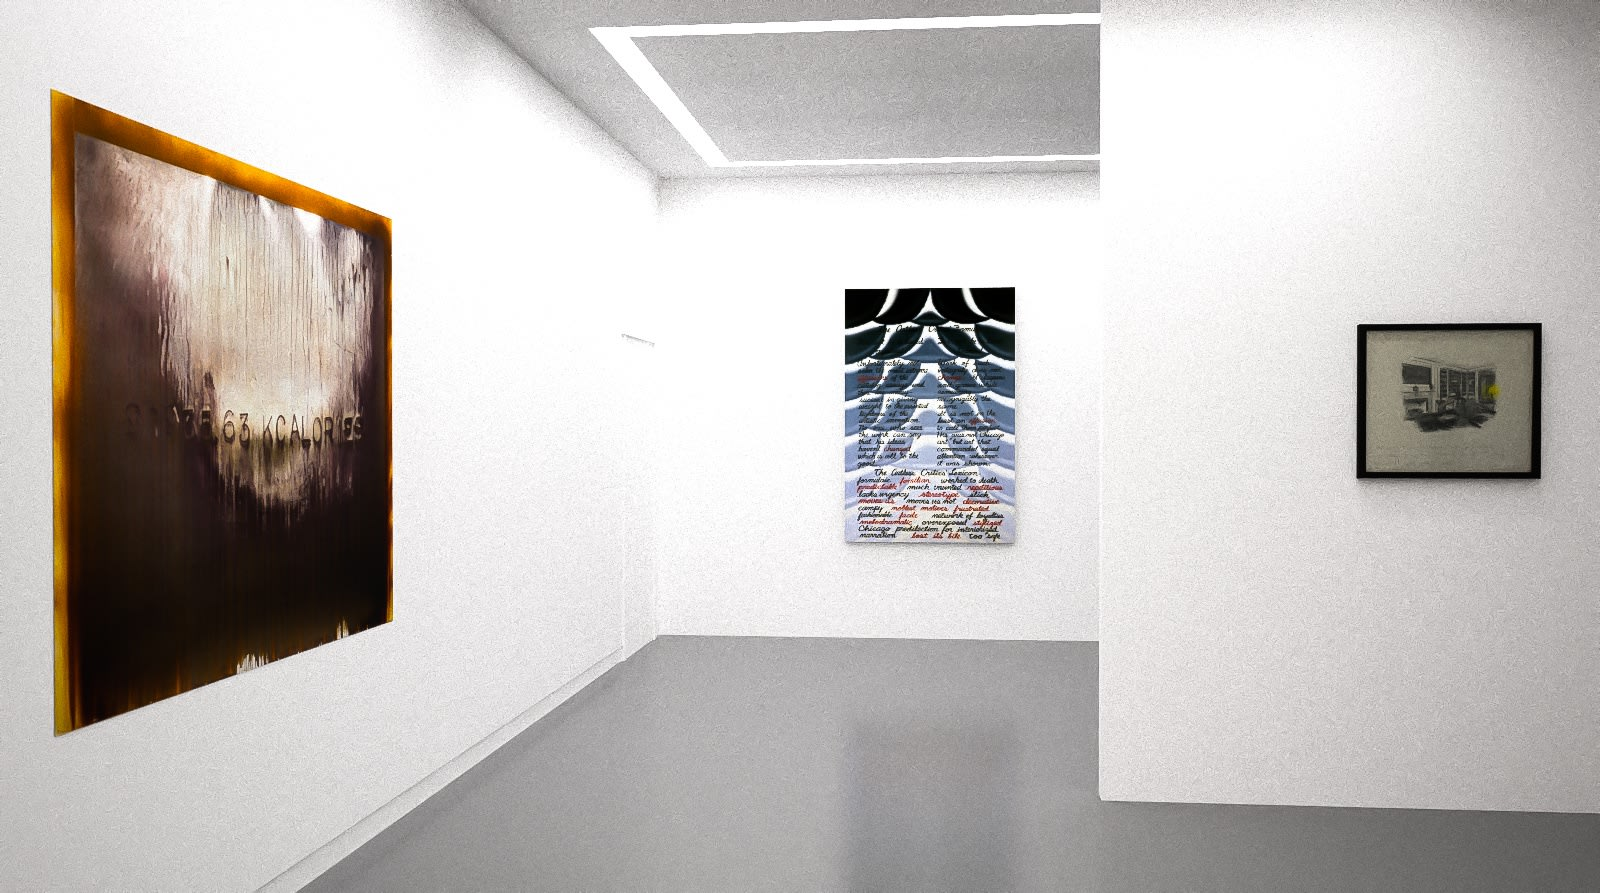 Works by Michael Joo, Roger Brown, and Allen Ruppersburg in The Written Word (virtual exhibition view), 2020, Kavi Gupta